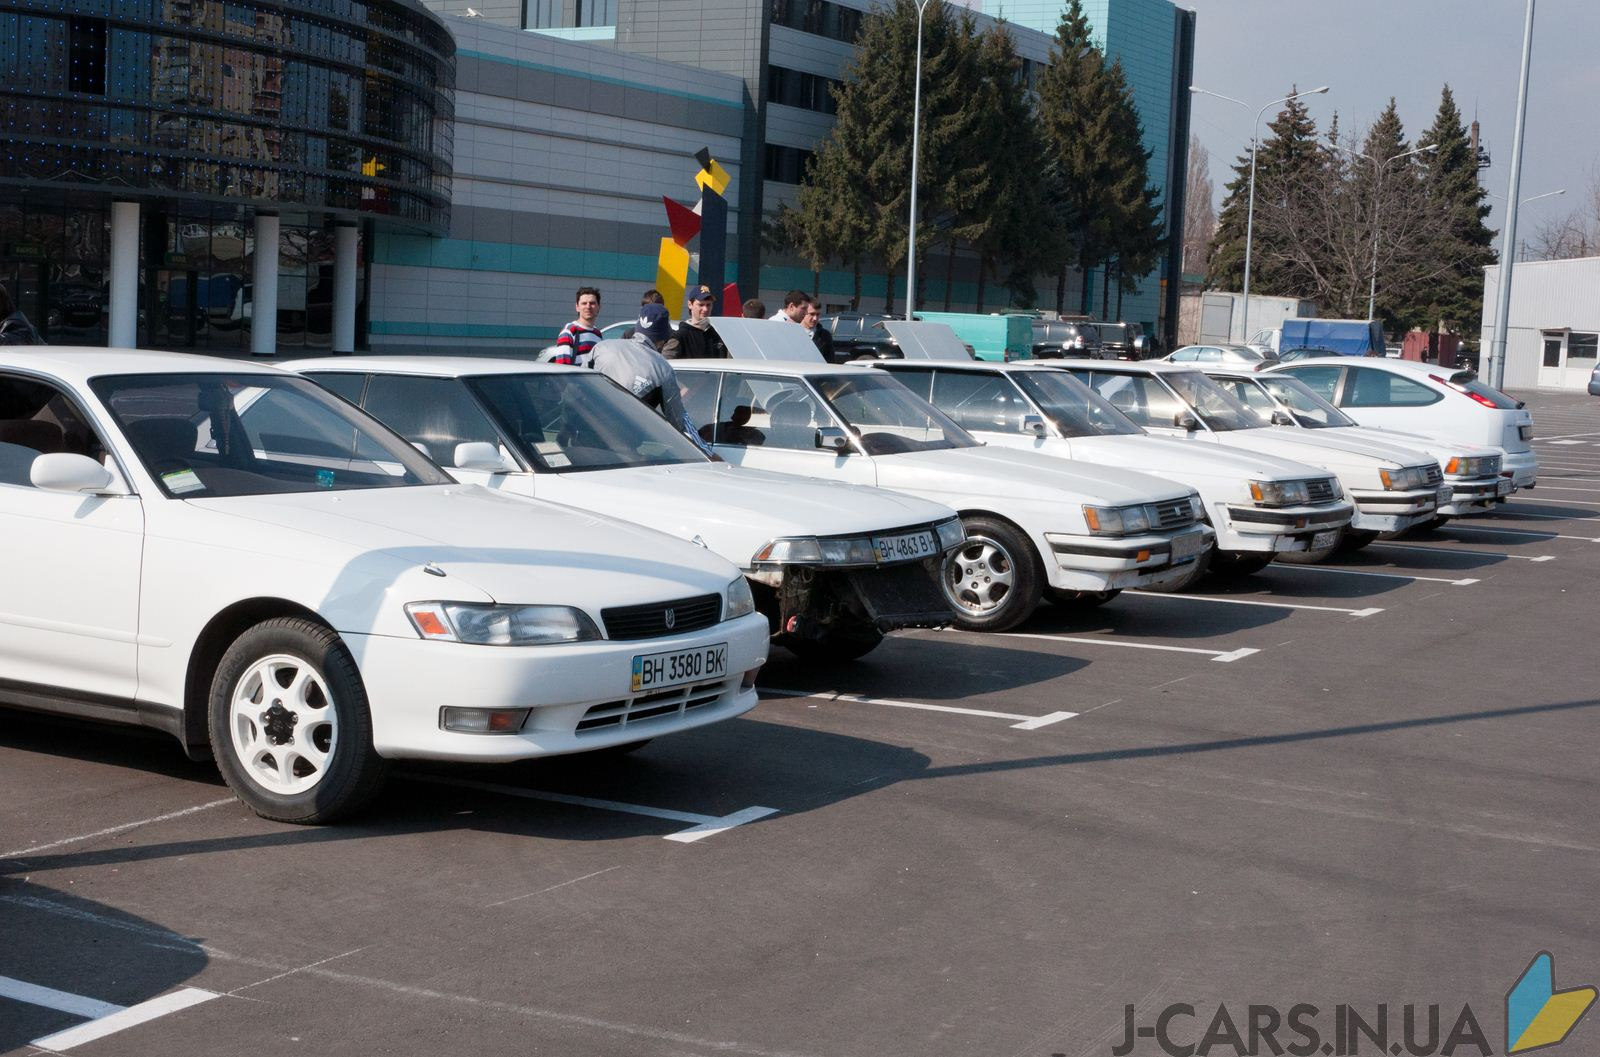 j-cars.in.ua toyota mark2